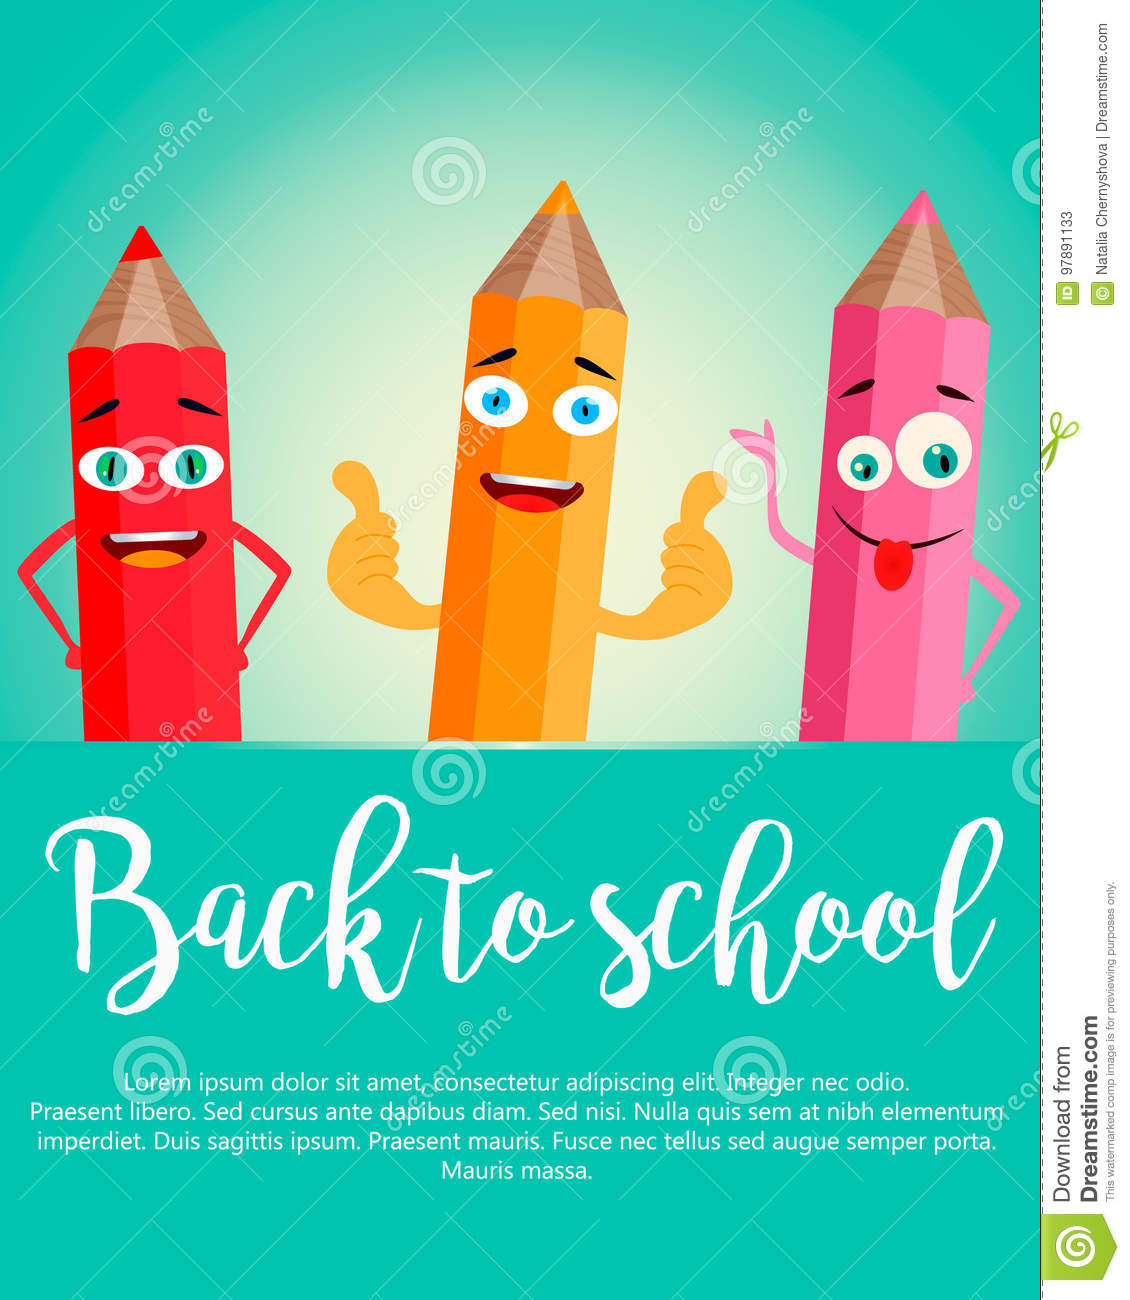 Back to school vertical background with realistic pencils